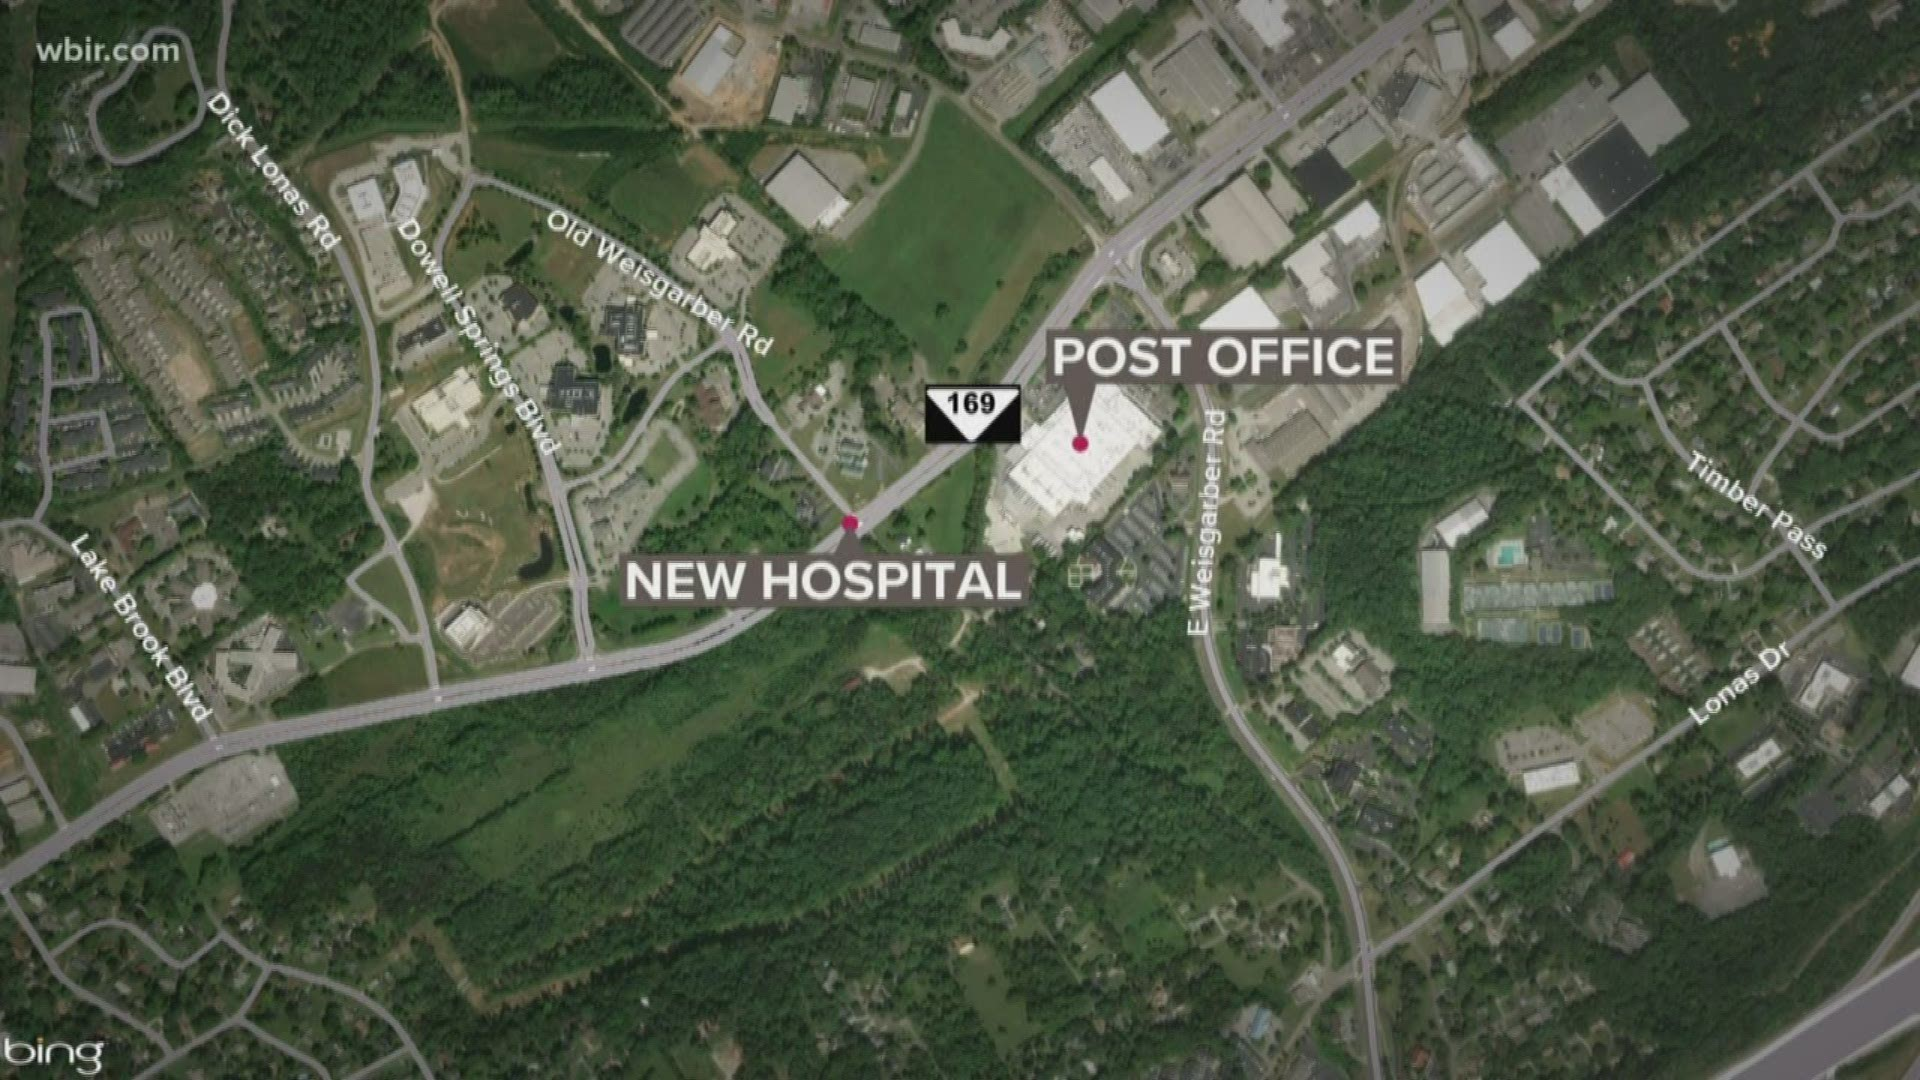 State Grants Certificate Of Need For New Psychiatric Hospital In West Knoxville Wbir Com